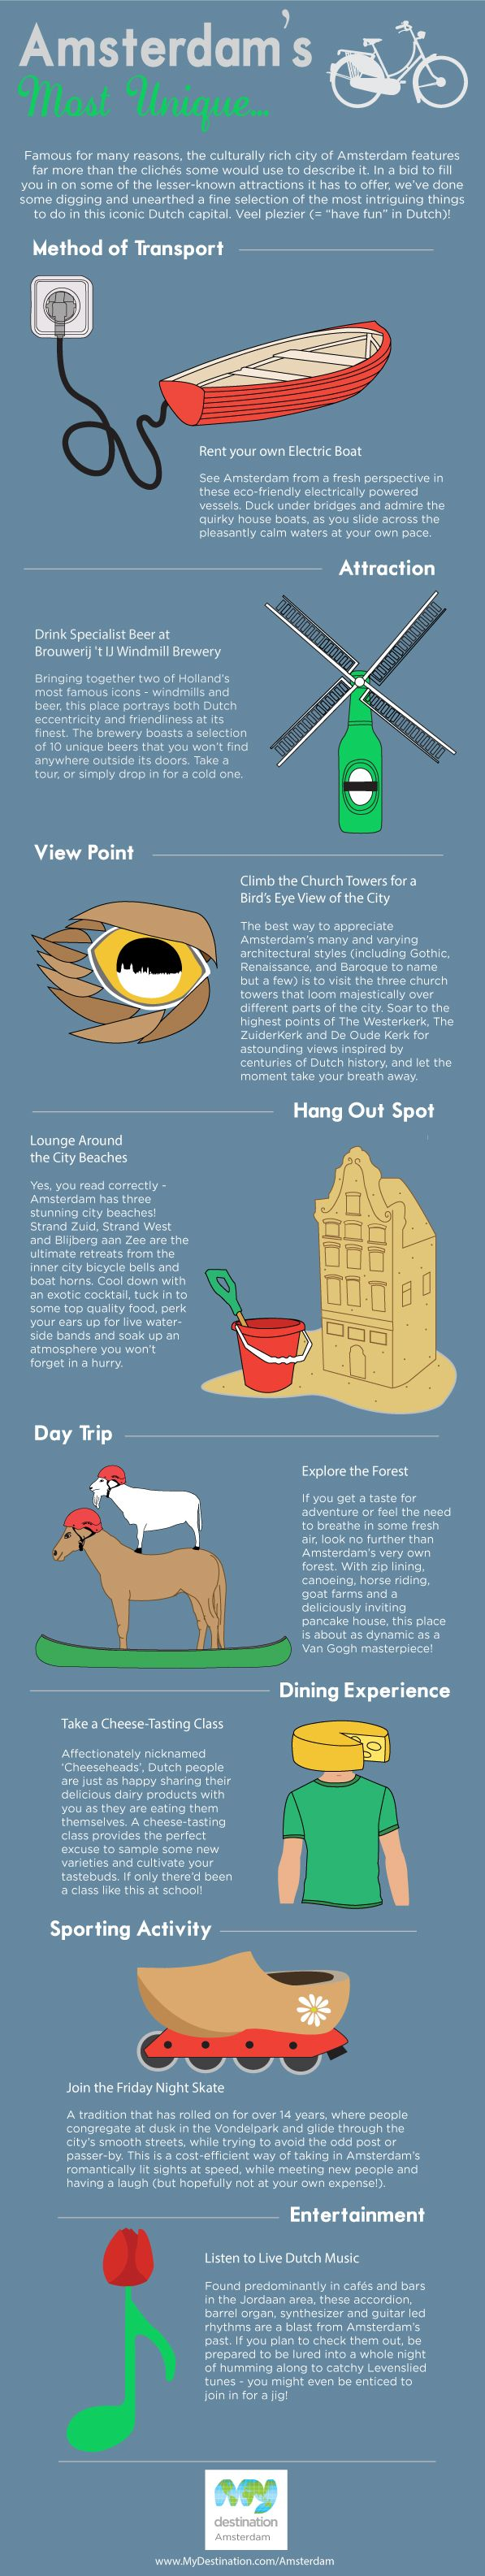 Unique Things To Do In Amsterdam Infographic